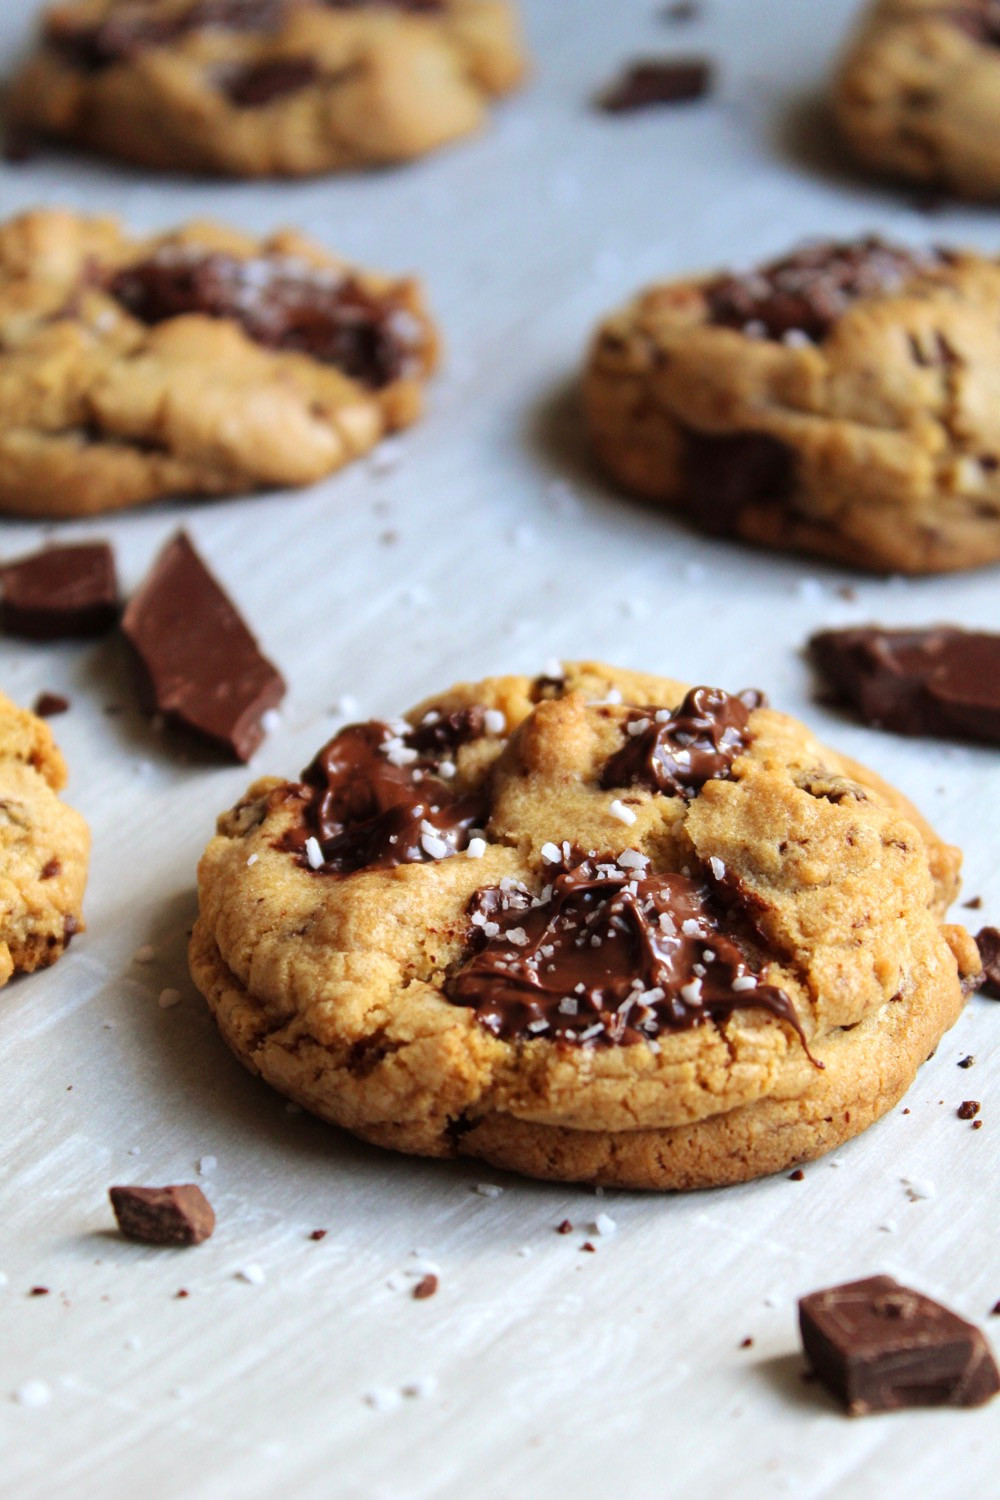 Salted Browned Butter Chocolate Chip Cookies | eatlovegarlic.com